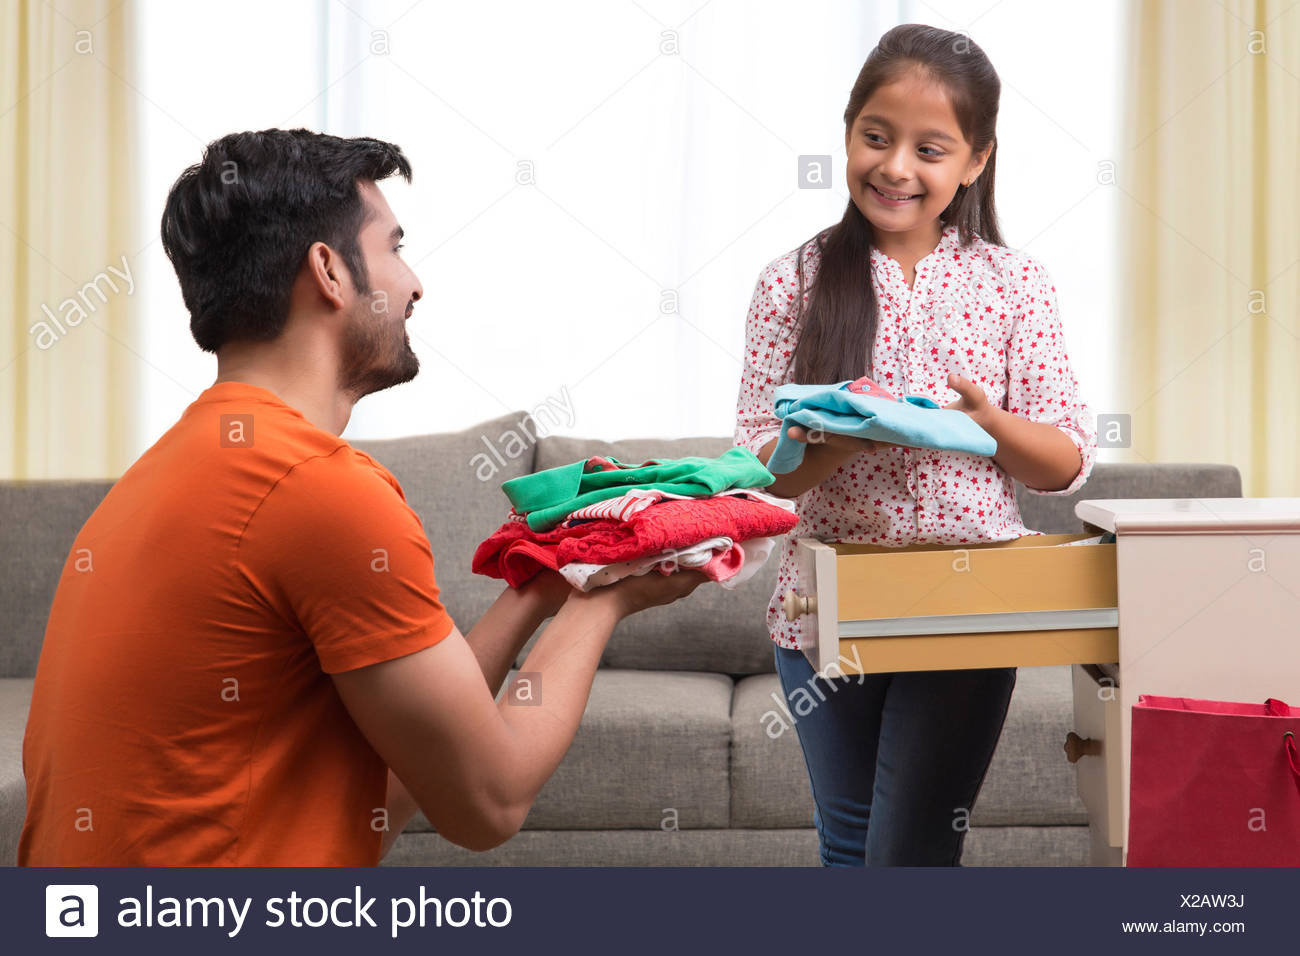 Daughter and father organizing clothes in cupboard - Stock Image